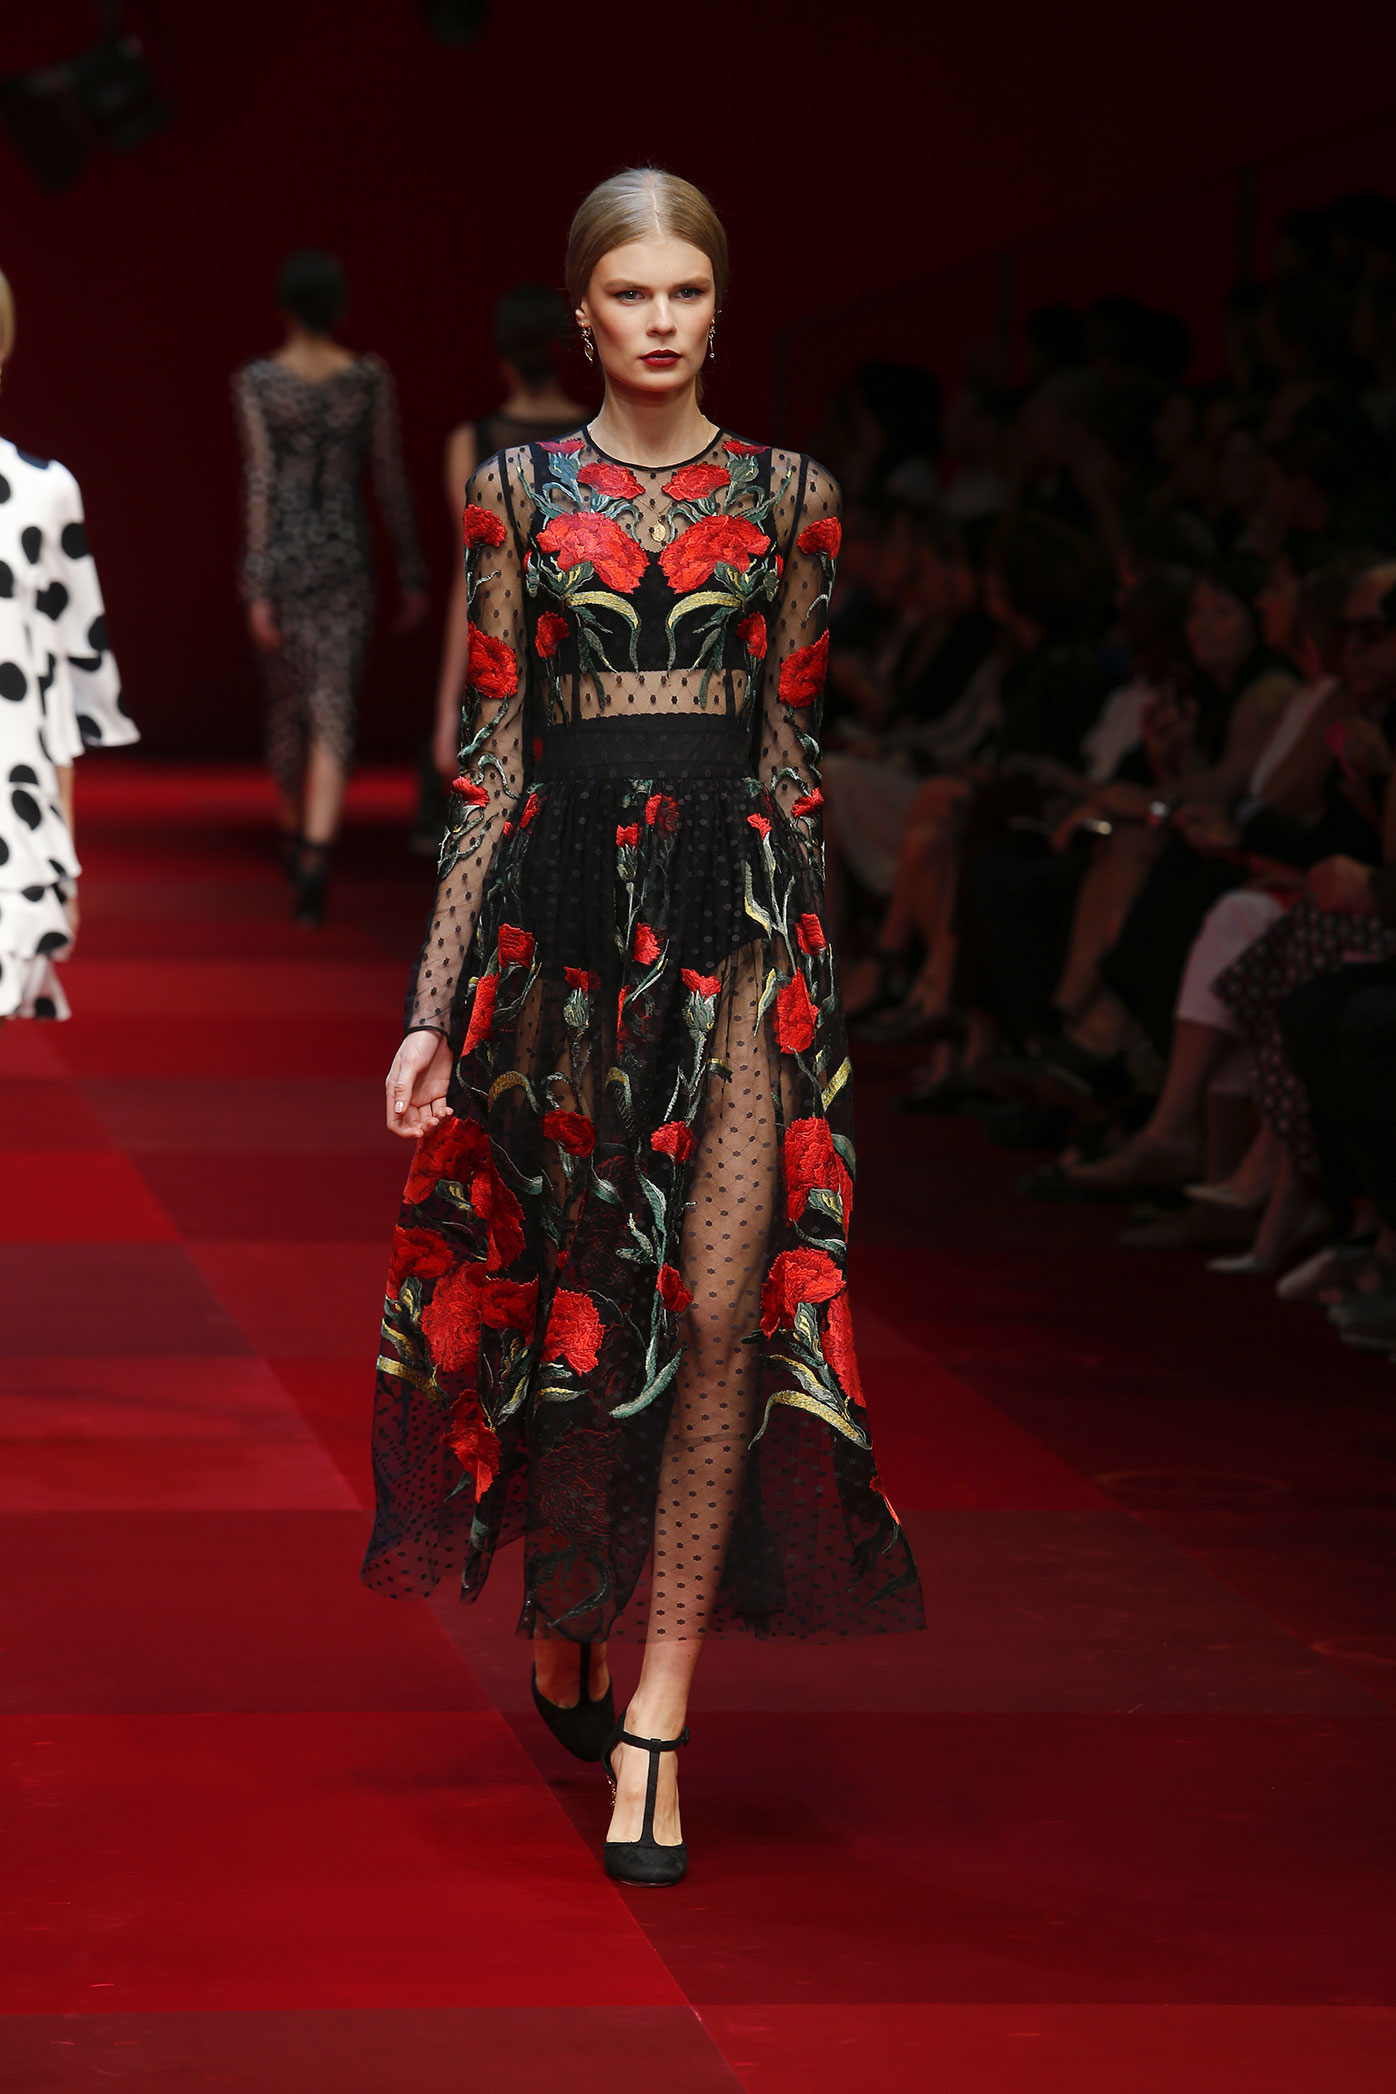 dolce-and-gabbana-summer-2015-women-fashion-show-runway-72-zoom